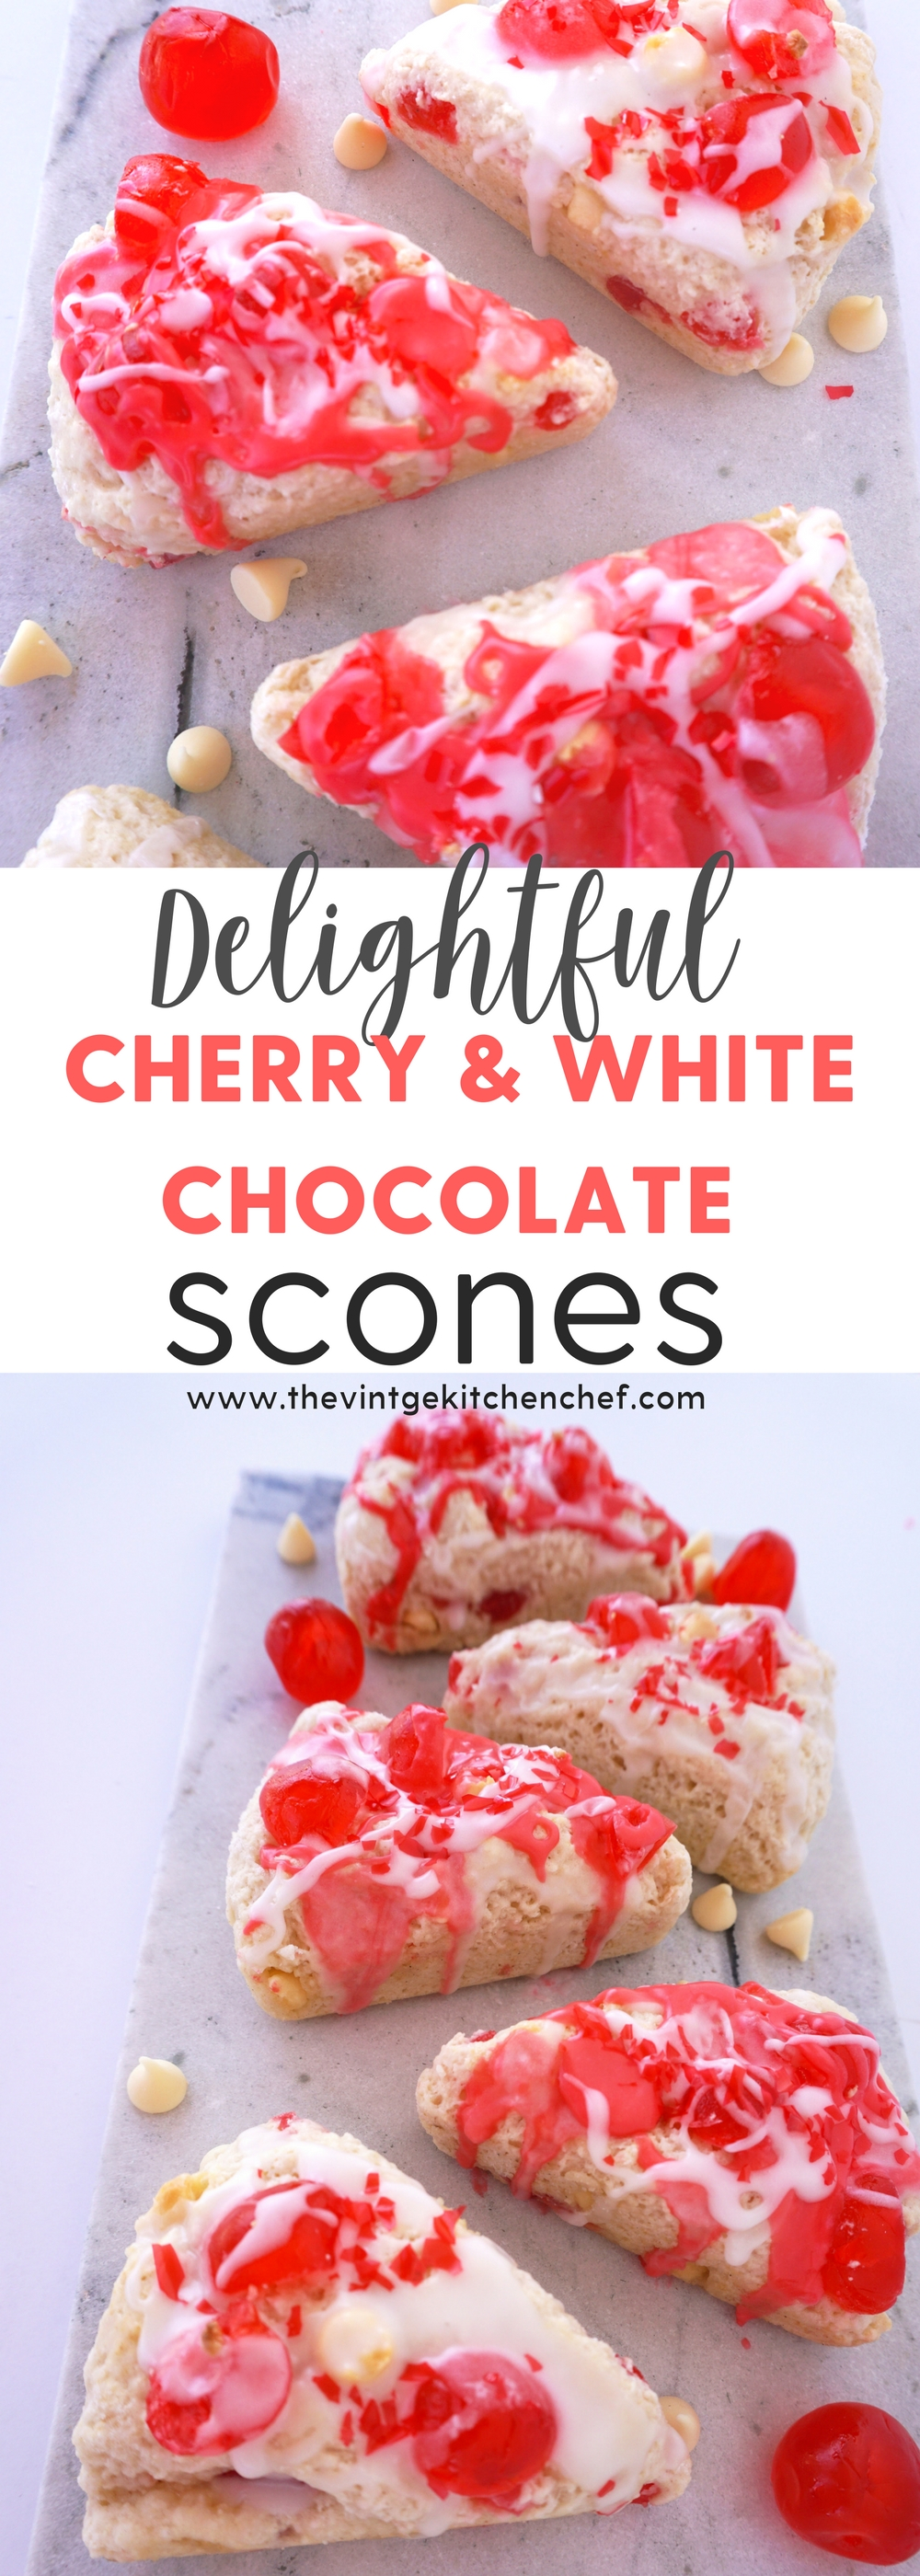 Lovely to look at and even better to eat! These yummy scones have the perfect mix of cherry and white chocolate. Perfect for breakfast, tea time or dessert!